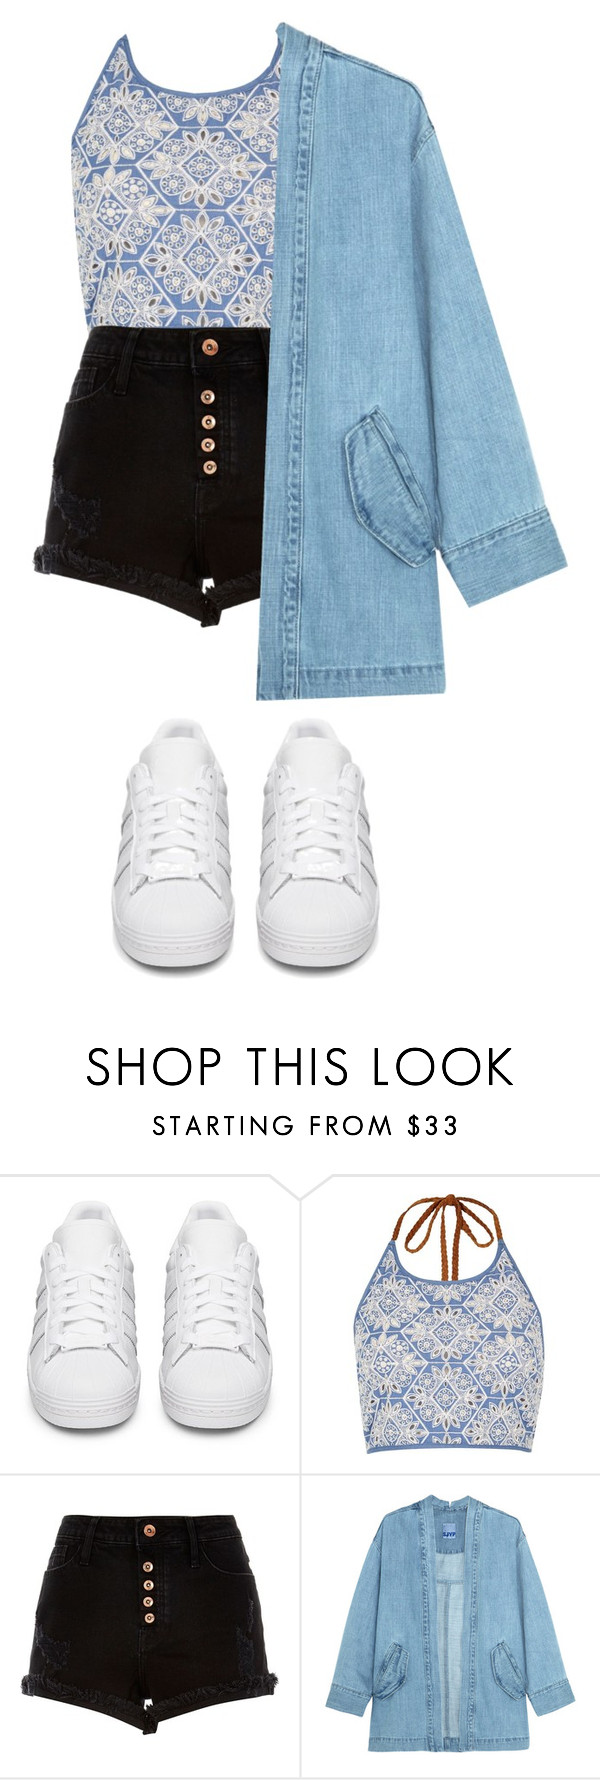 """""""IDK is this OK👌"""" by willabethdadzie ❤ liked on Polyvore featuring adidas Originals, River Island and Steve J & Yoni P"""